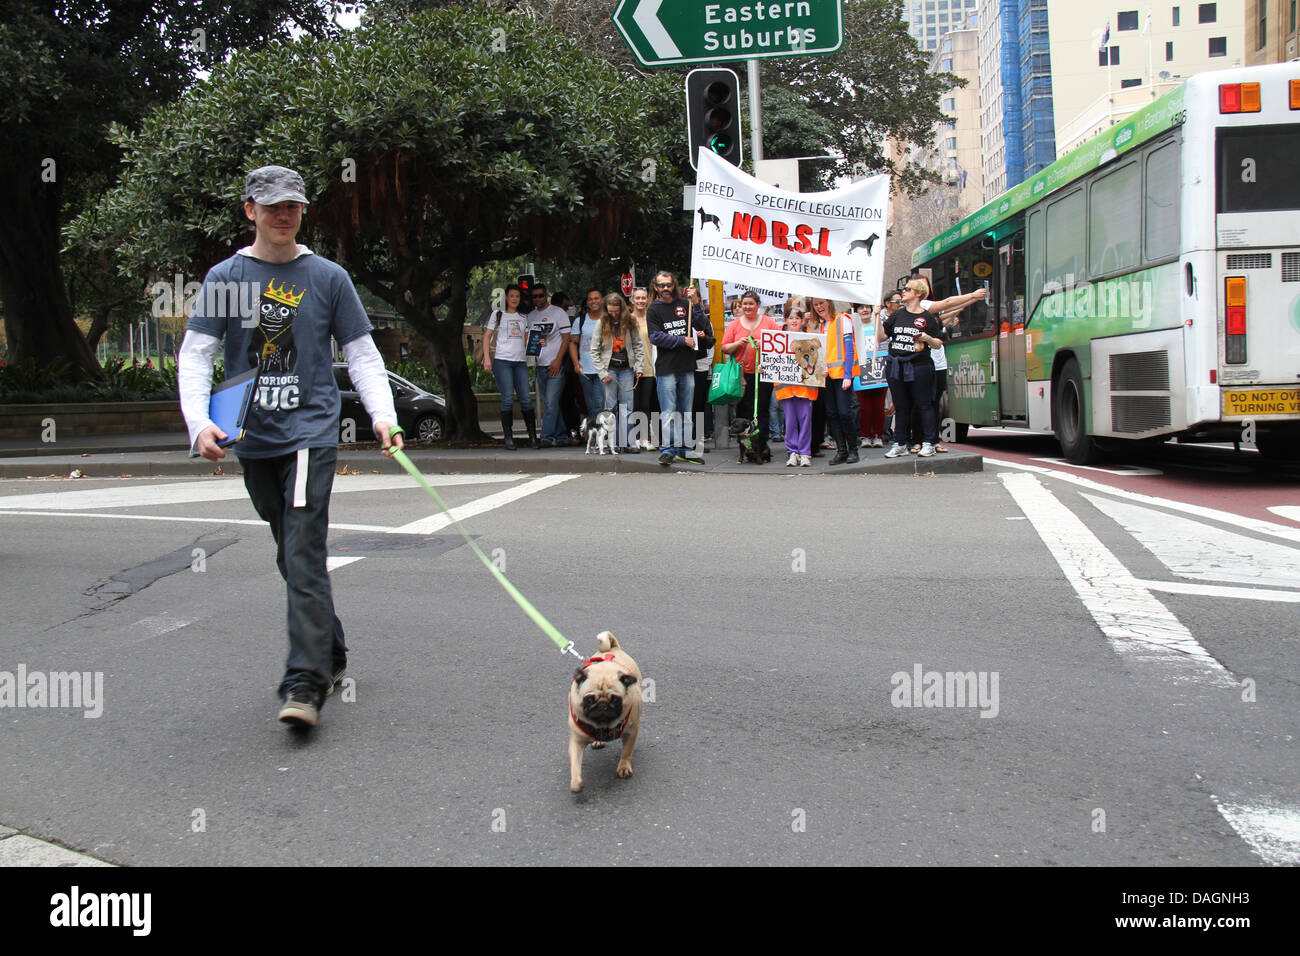 Sydney, NSW, Australia. 13 July 2013. A march and rally organised by the Australian BSL Protestors United group - Stock Image